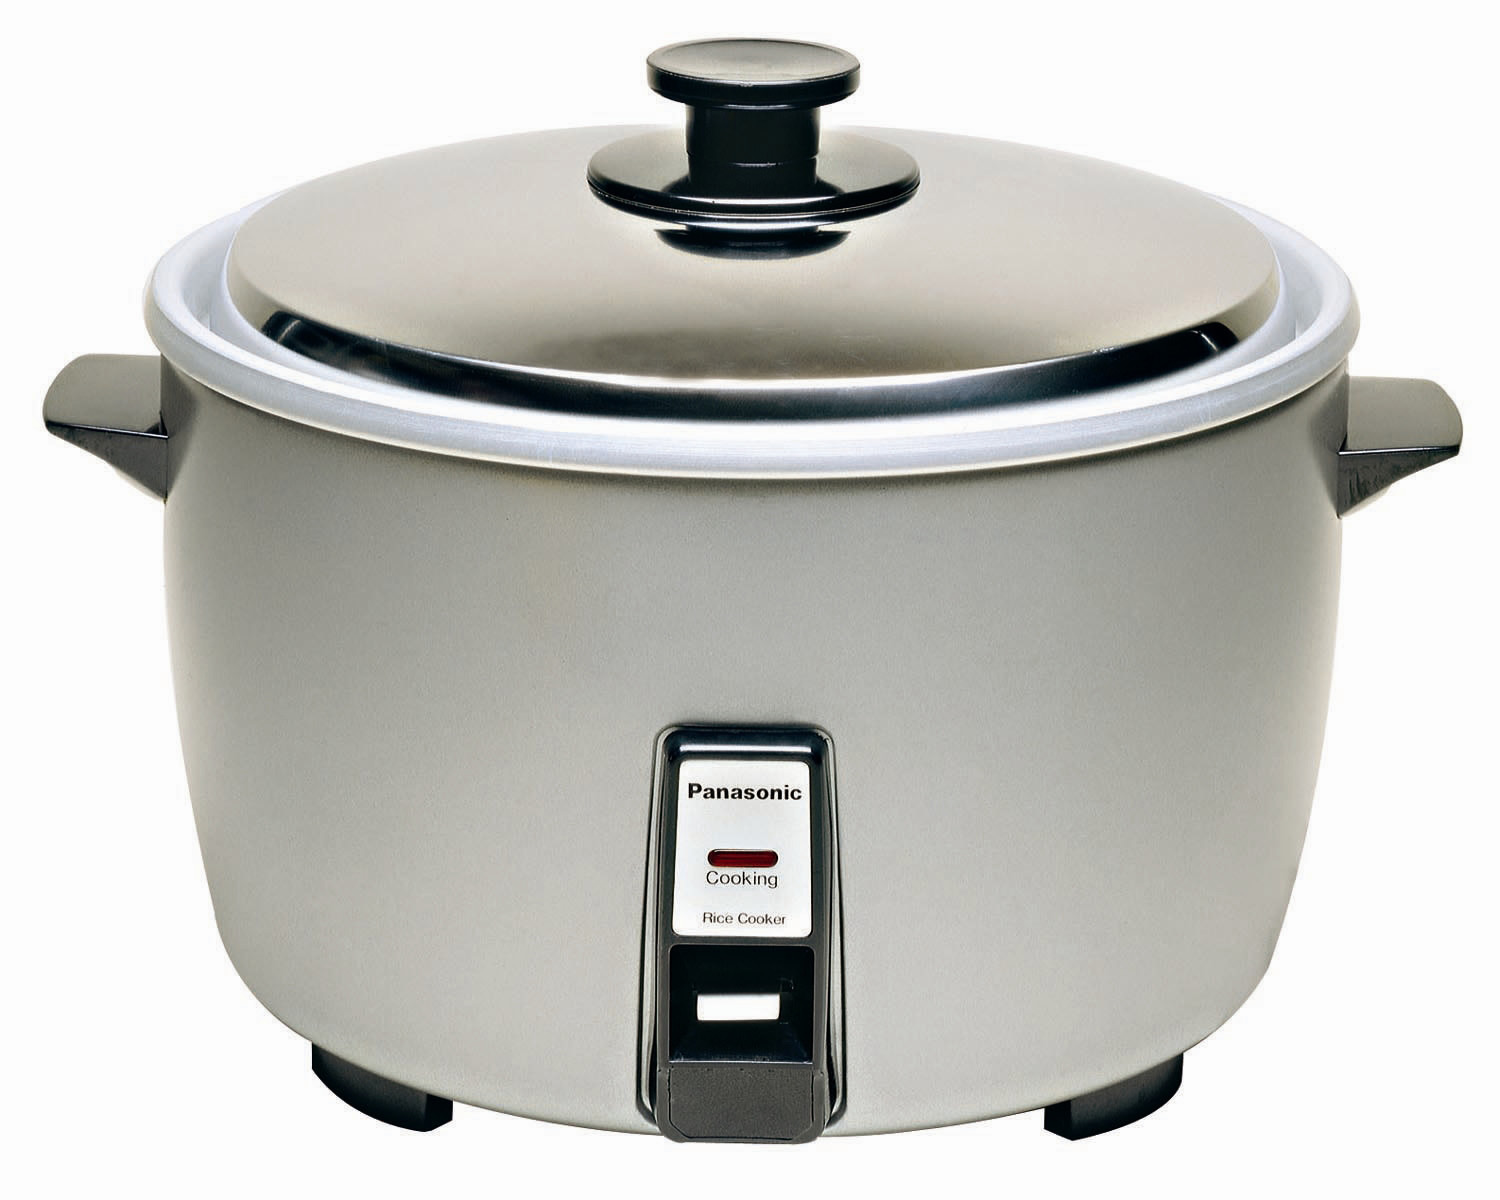 kyowa rice cooker wiring diagram guitar maker electric cookers warmers 23 cup panasonic